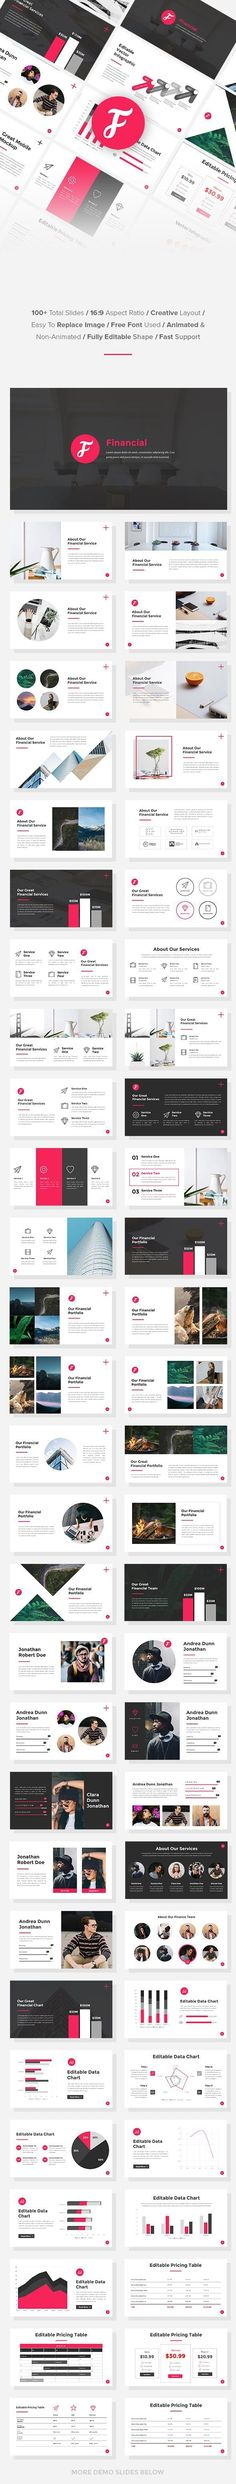 Buy Financial - Finance Keynote Template by suavedigital on GraphicRiver. Financial – Finance Keynote Template This presentation slide is created based on professional presentation. Marketing Presentation, Corporate Presentation, Professional Presentation, Presentation Slides, Presentation Design, Presentation Templates, Web Design, Website Design, Graphic Design